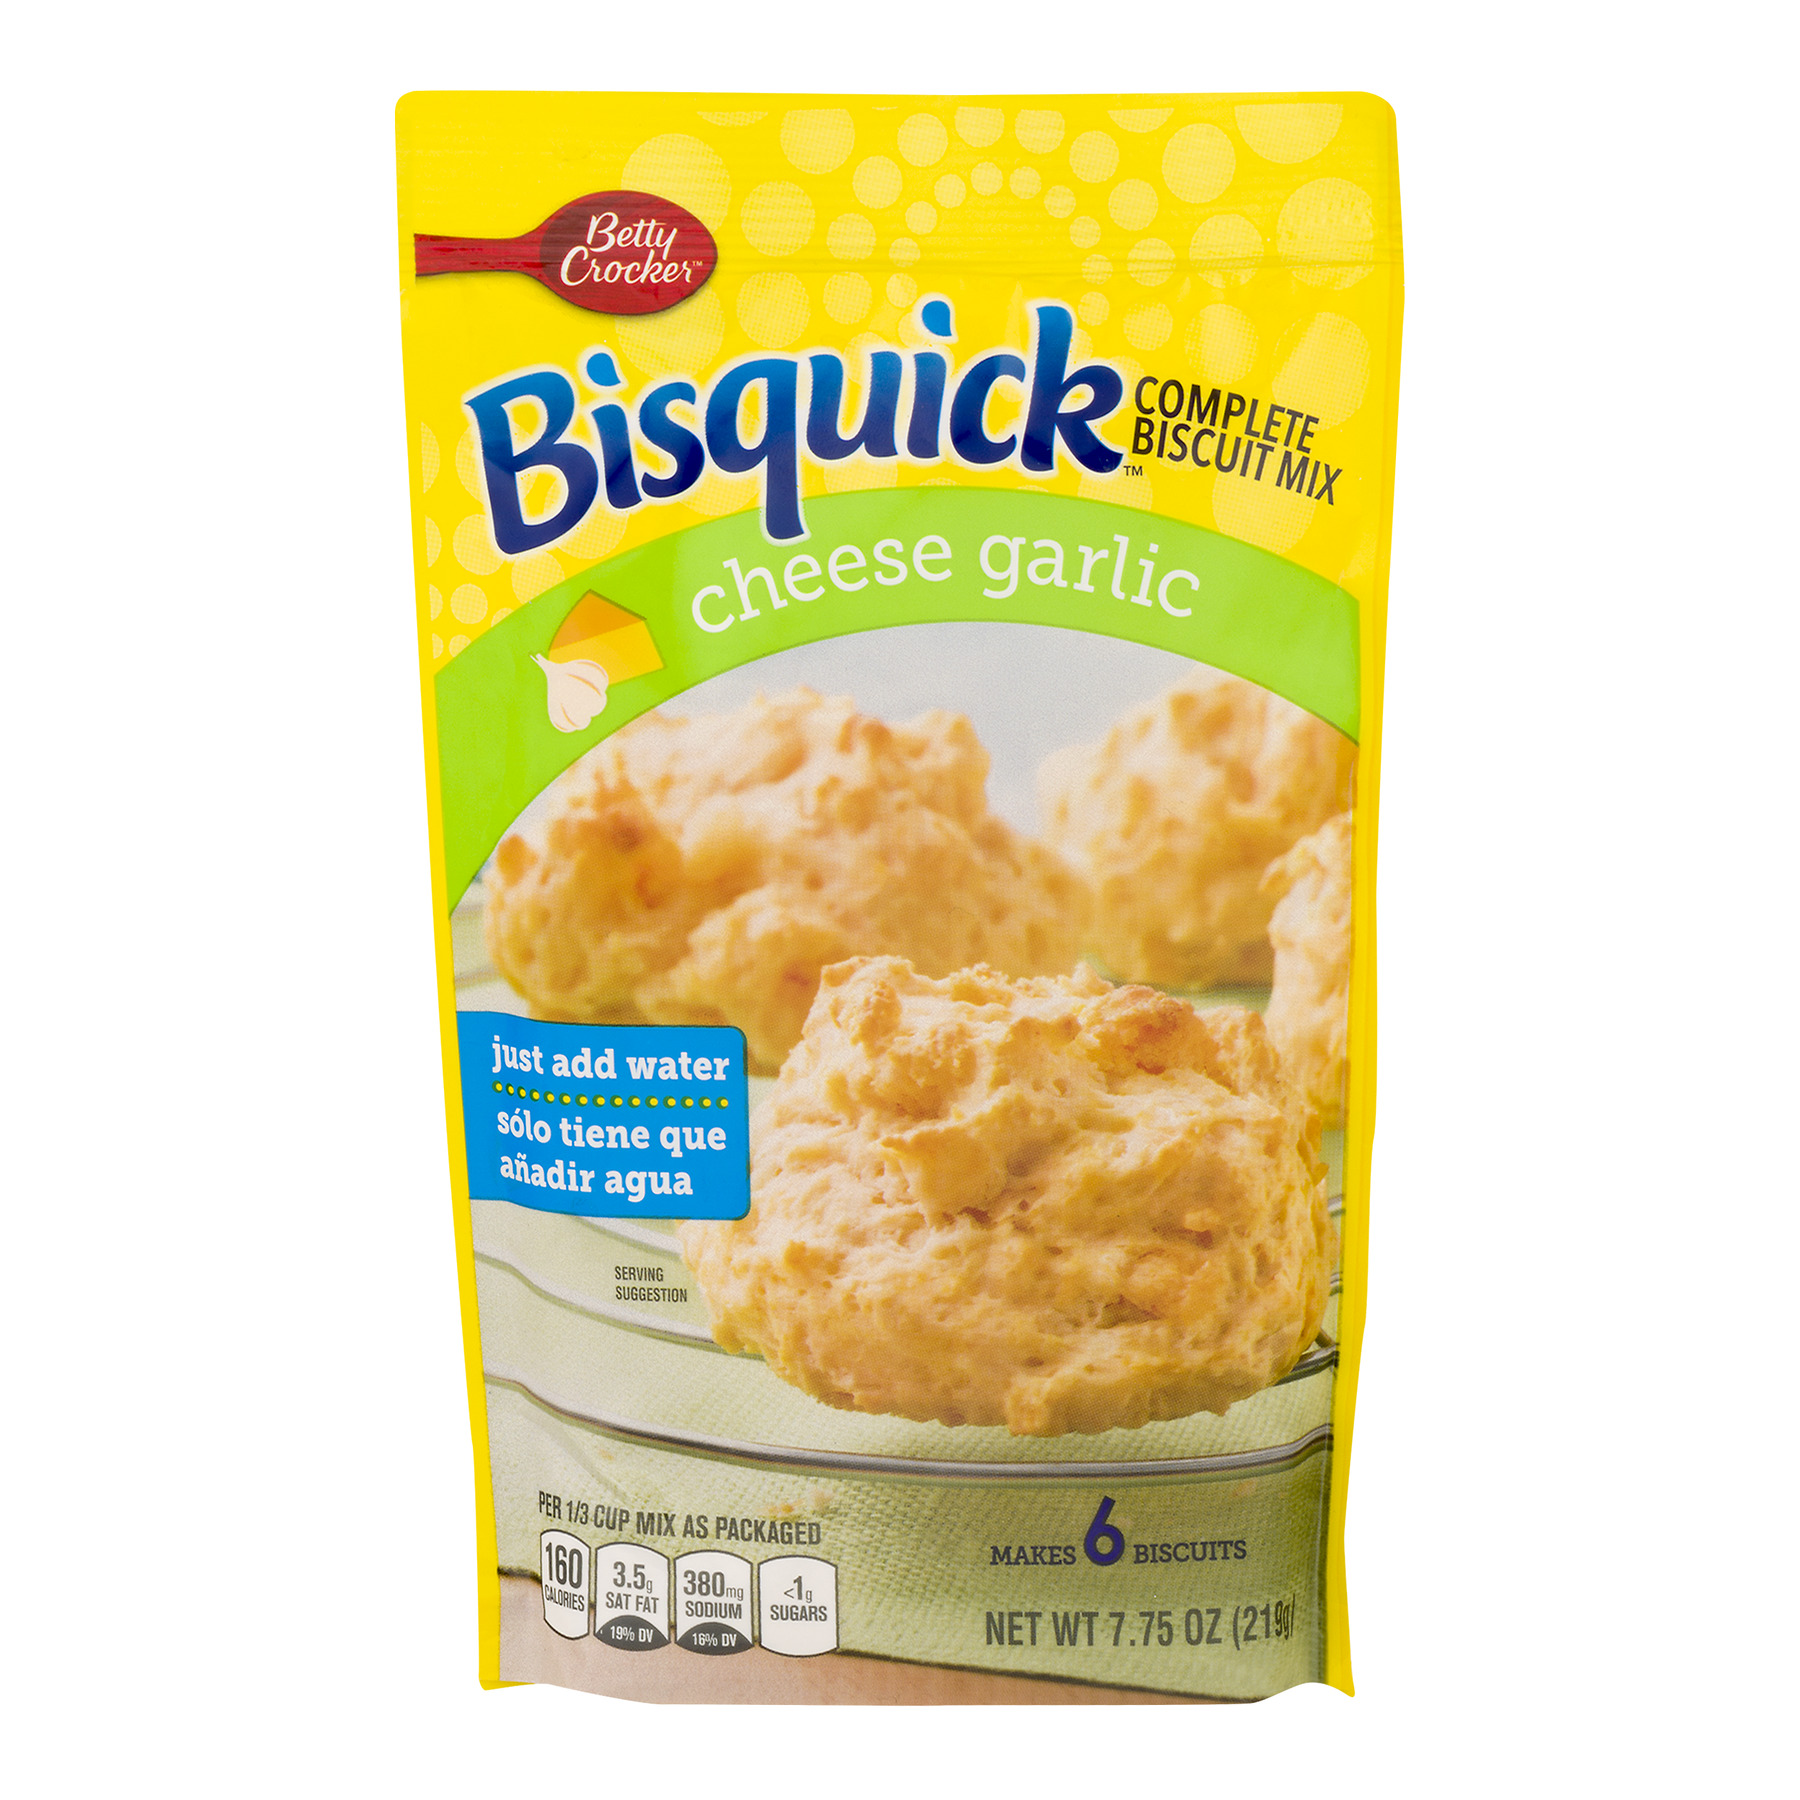 Betty Crocker Bisquick Biscuit Mix Complete Cheese Garlic